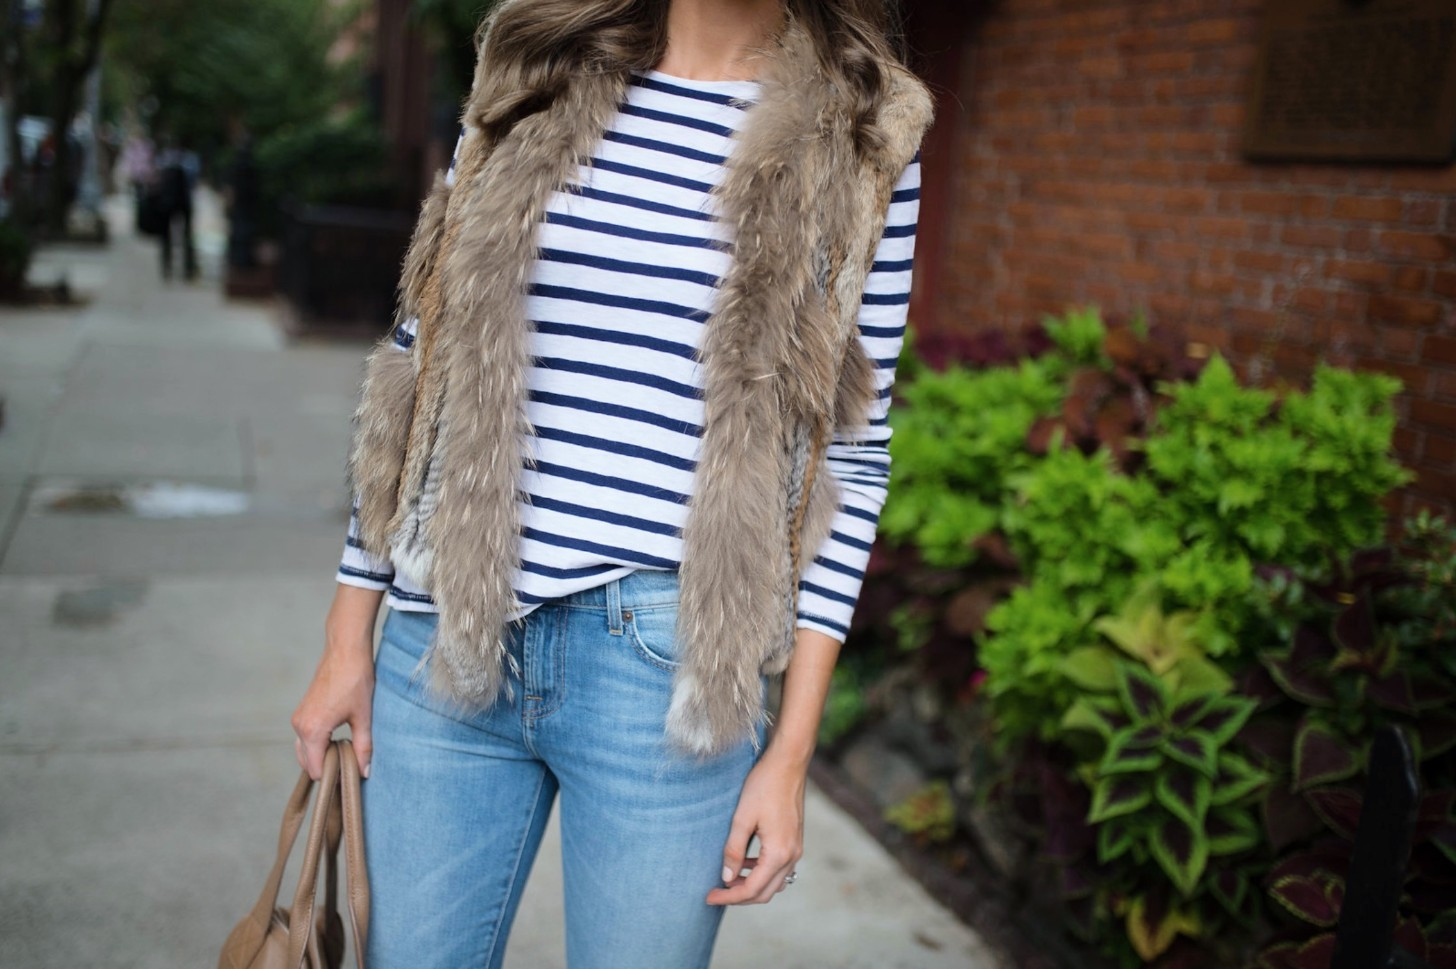 spring weekend outfit idea fur vest navy stripe jcrew top blue ripped jeans 7 for all mankind nude heels blog new york style elixir fashion blogger lauren slade 12